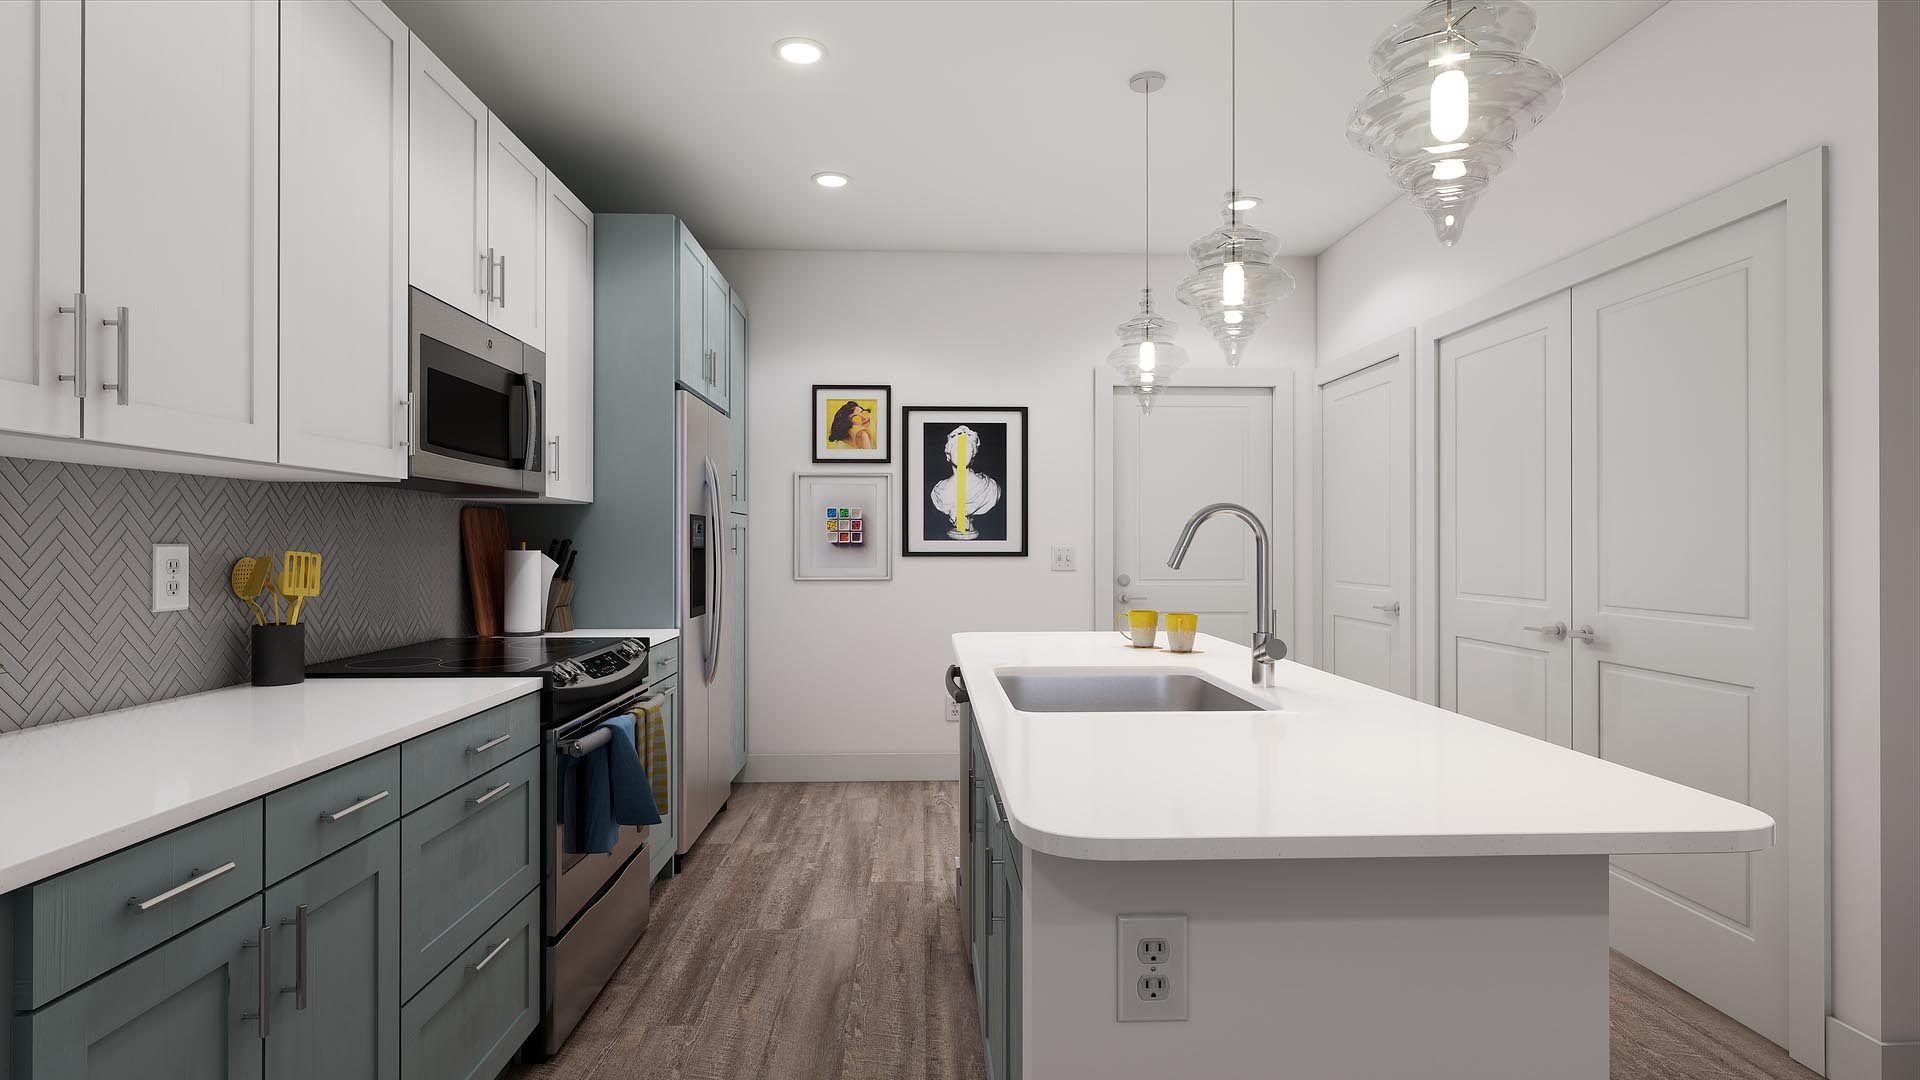 A rendering of an apartment kitchen